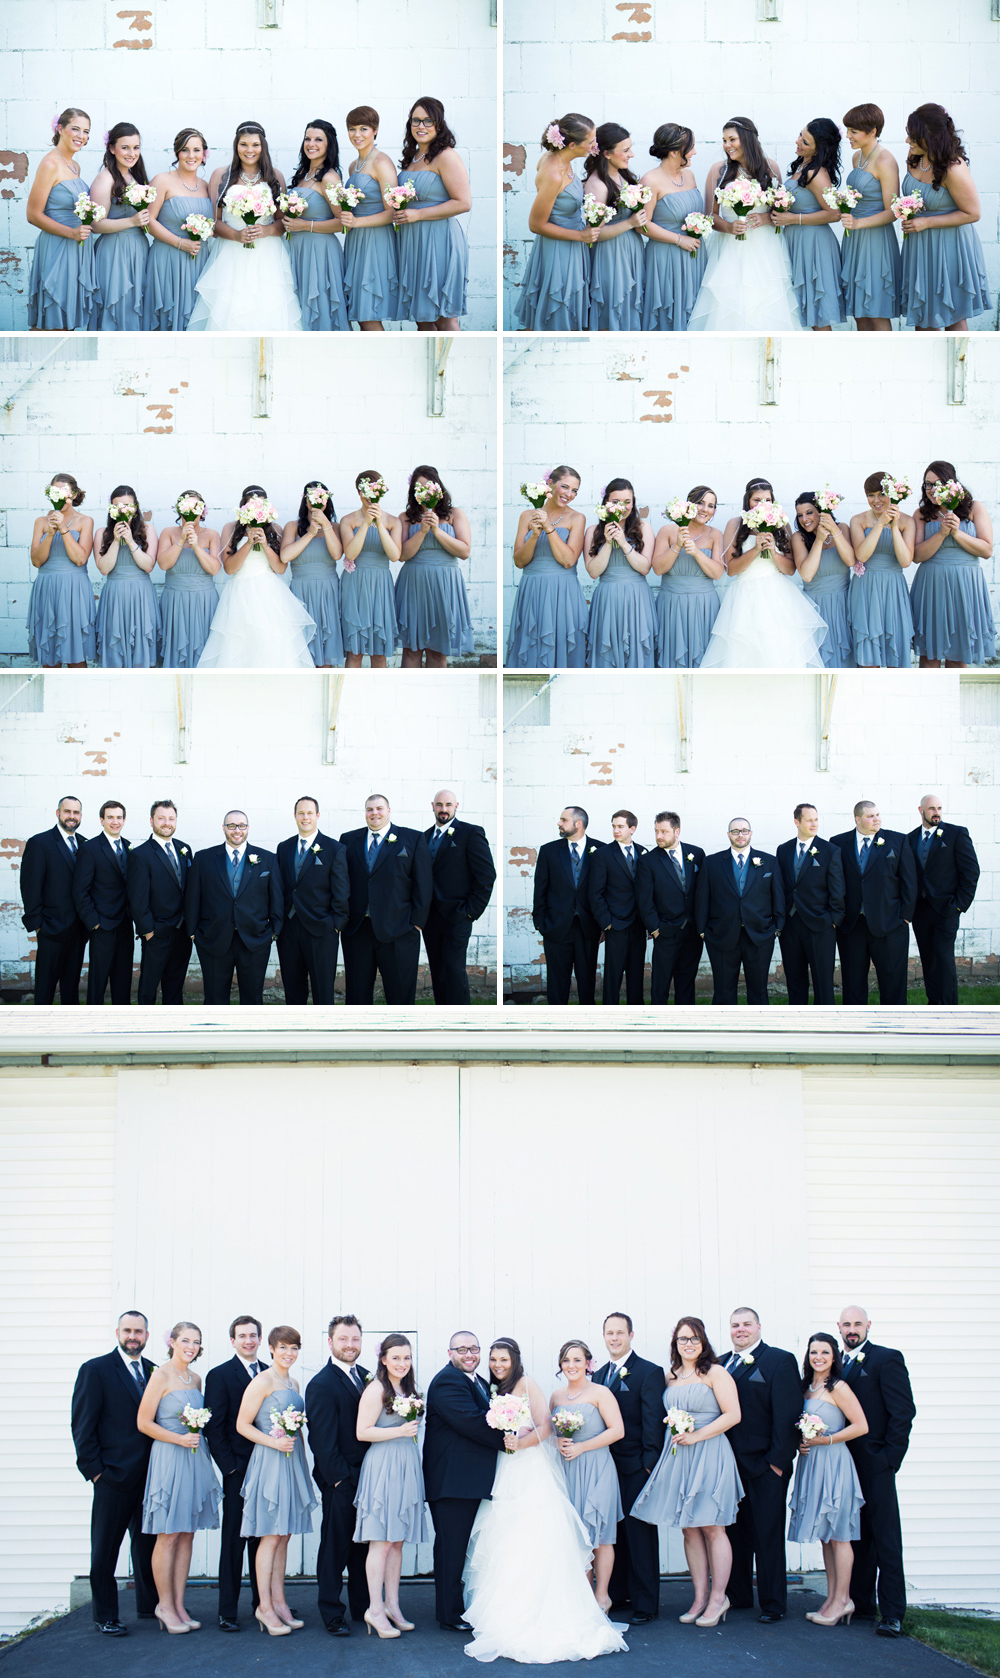 Some fun with the bridal party!